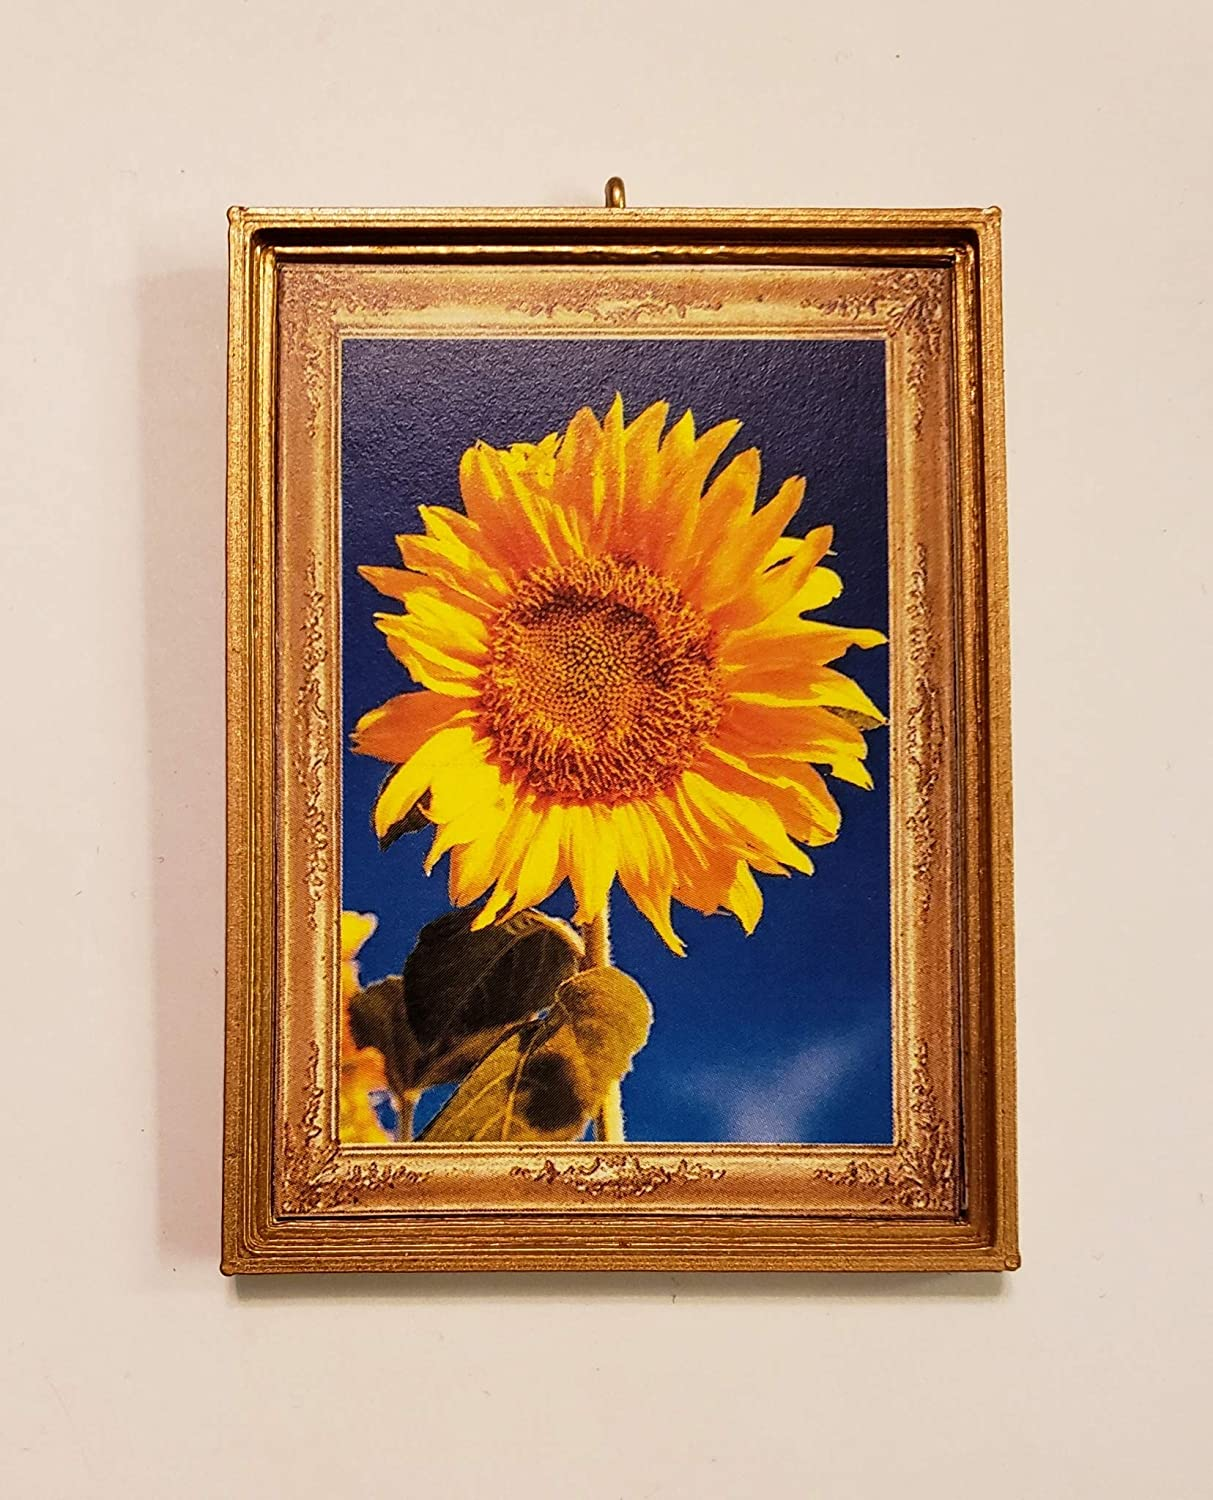 Dollhouse Miniature Without a Bail. Brilliant Sunflower Photograph Blue Sky